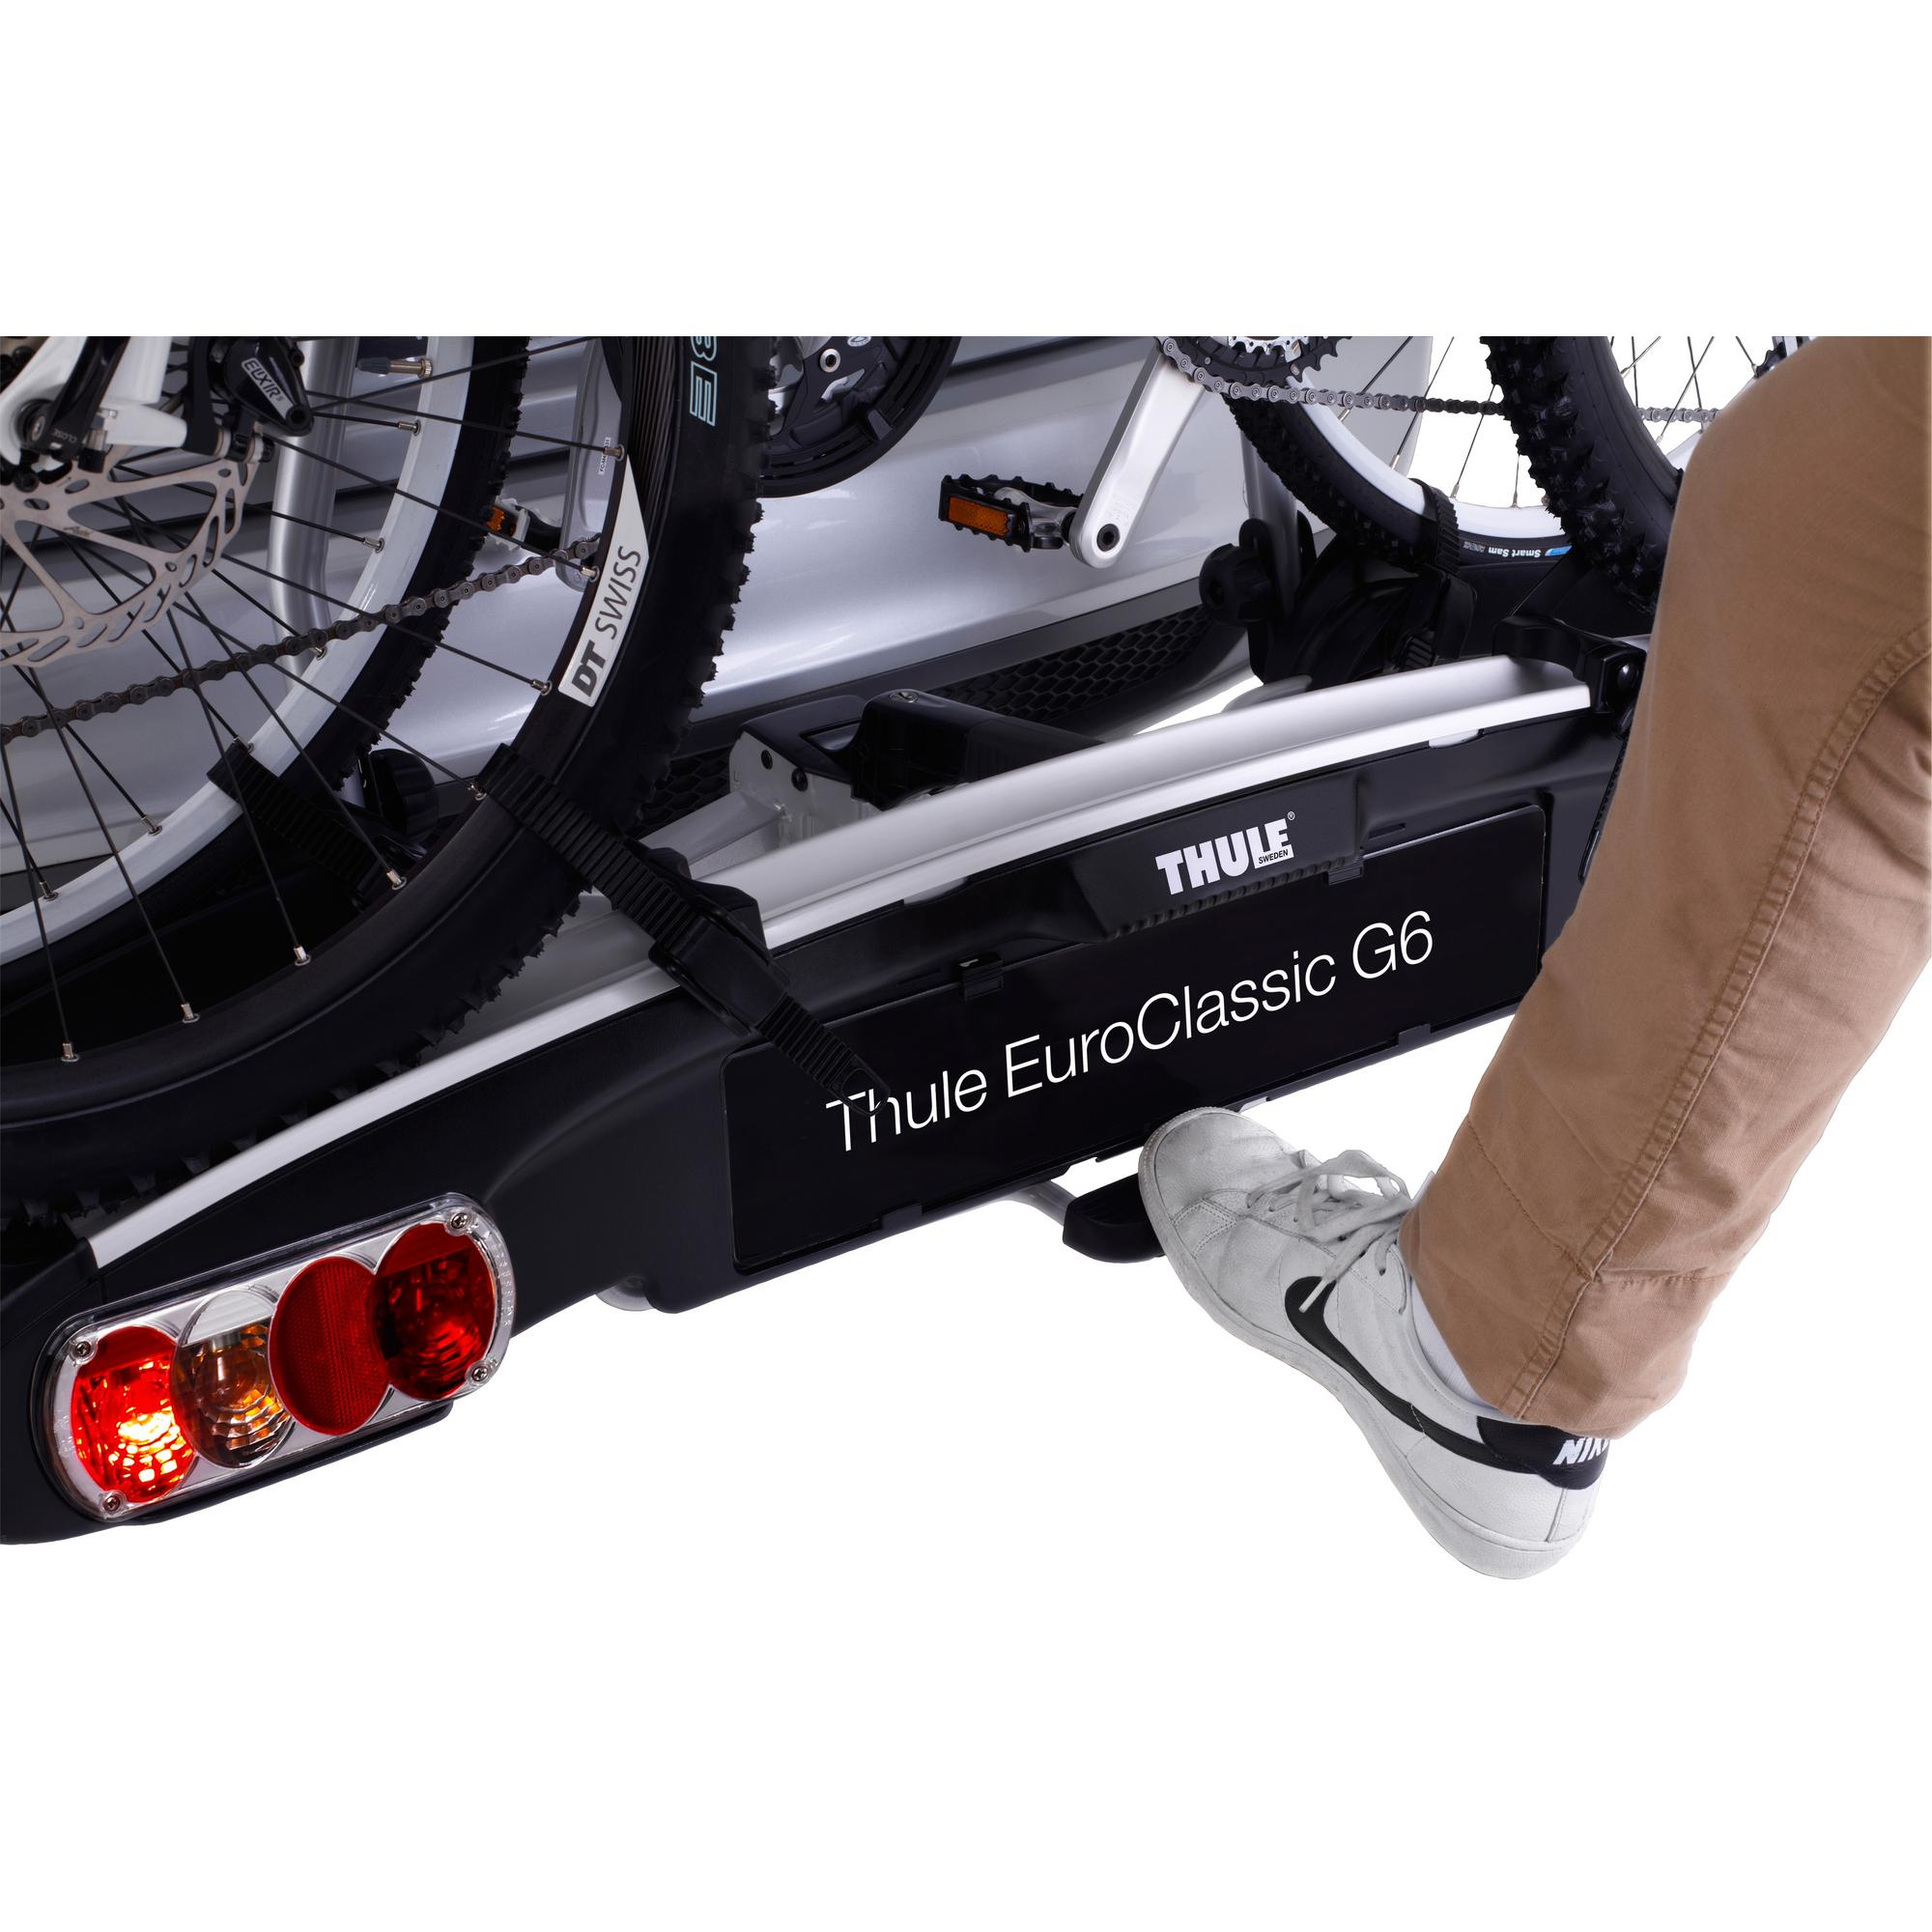 thule euroclassic g6 929 bike bicycle cycling rear mounted carrier holder rack ebay. Black Bedroom Furniture Sets. Home Design Ideas